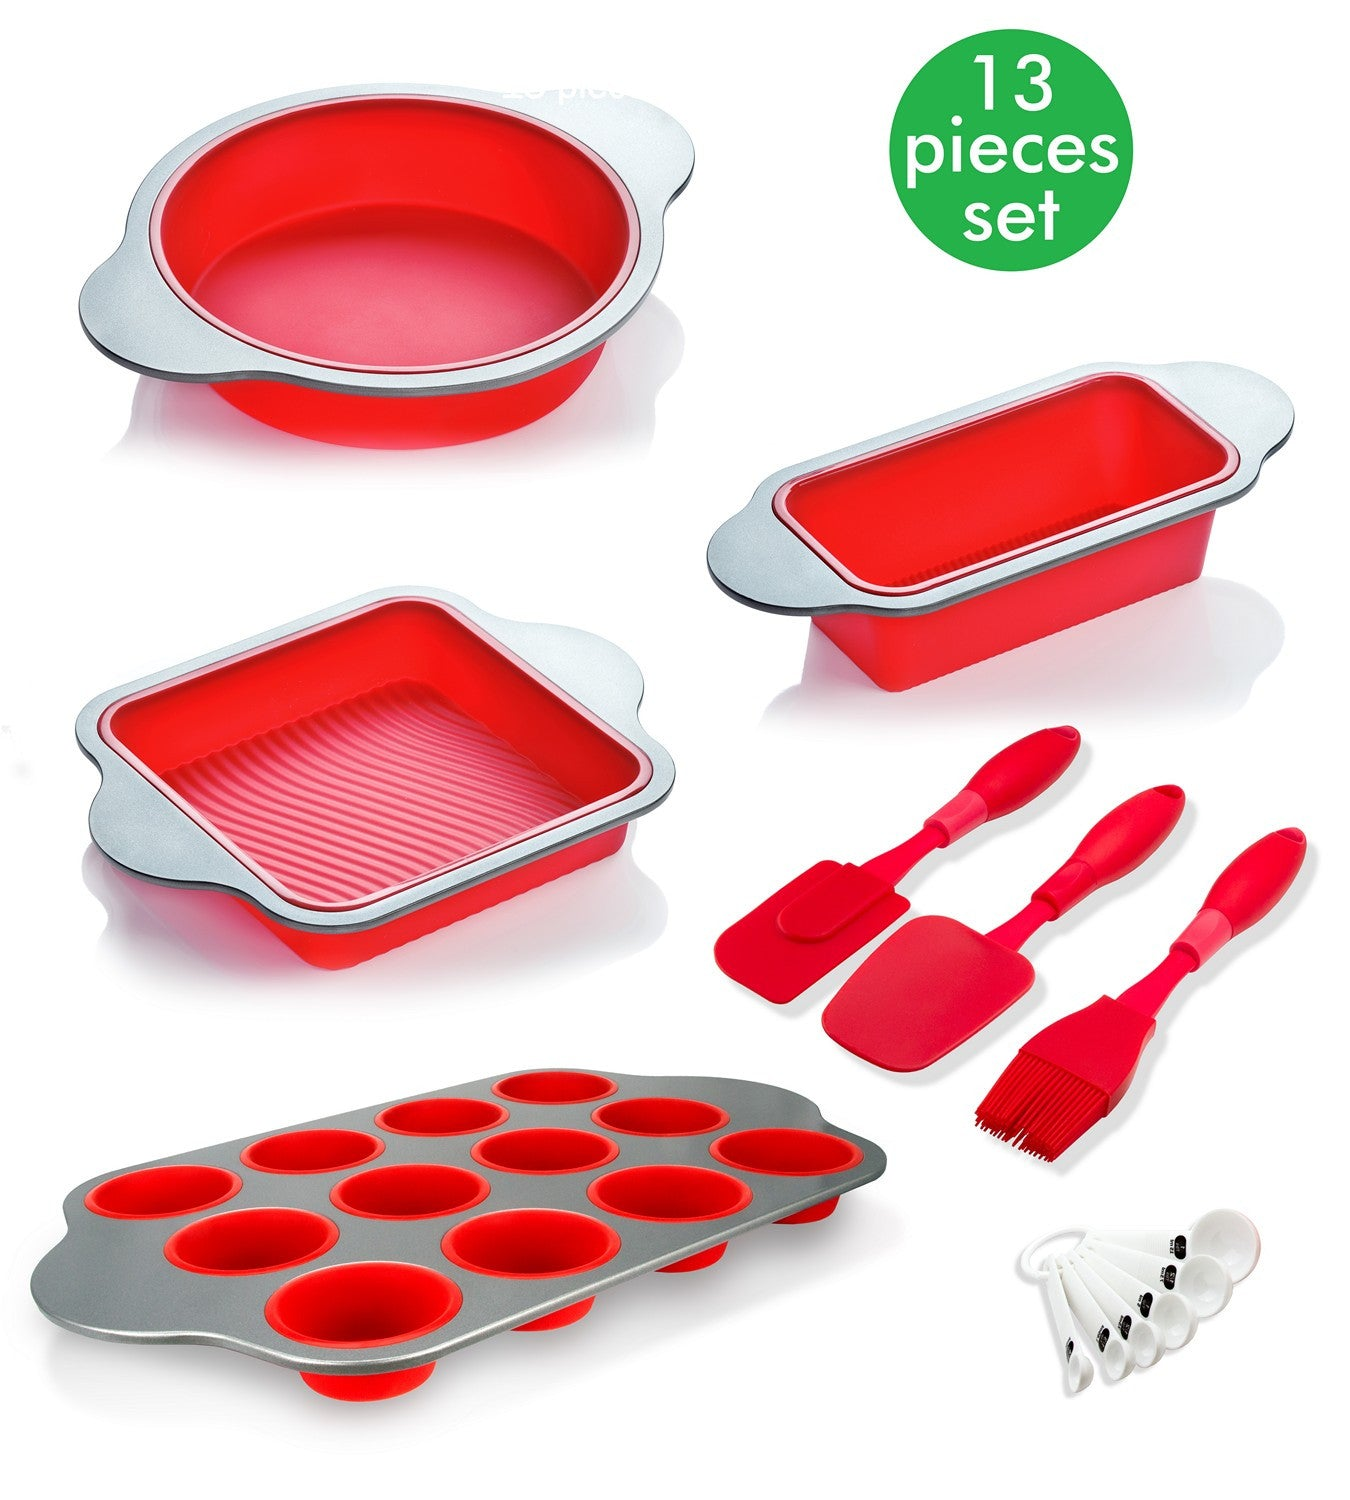 13 Set Premium Silicone Baking Pans & Utensils